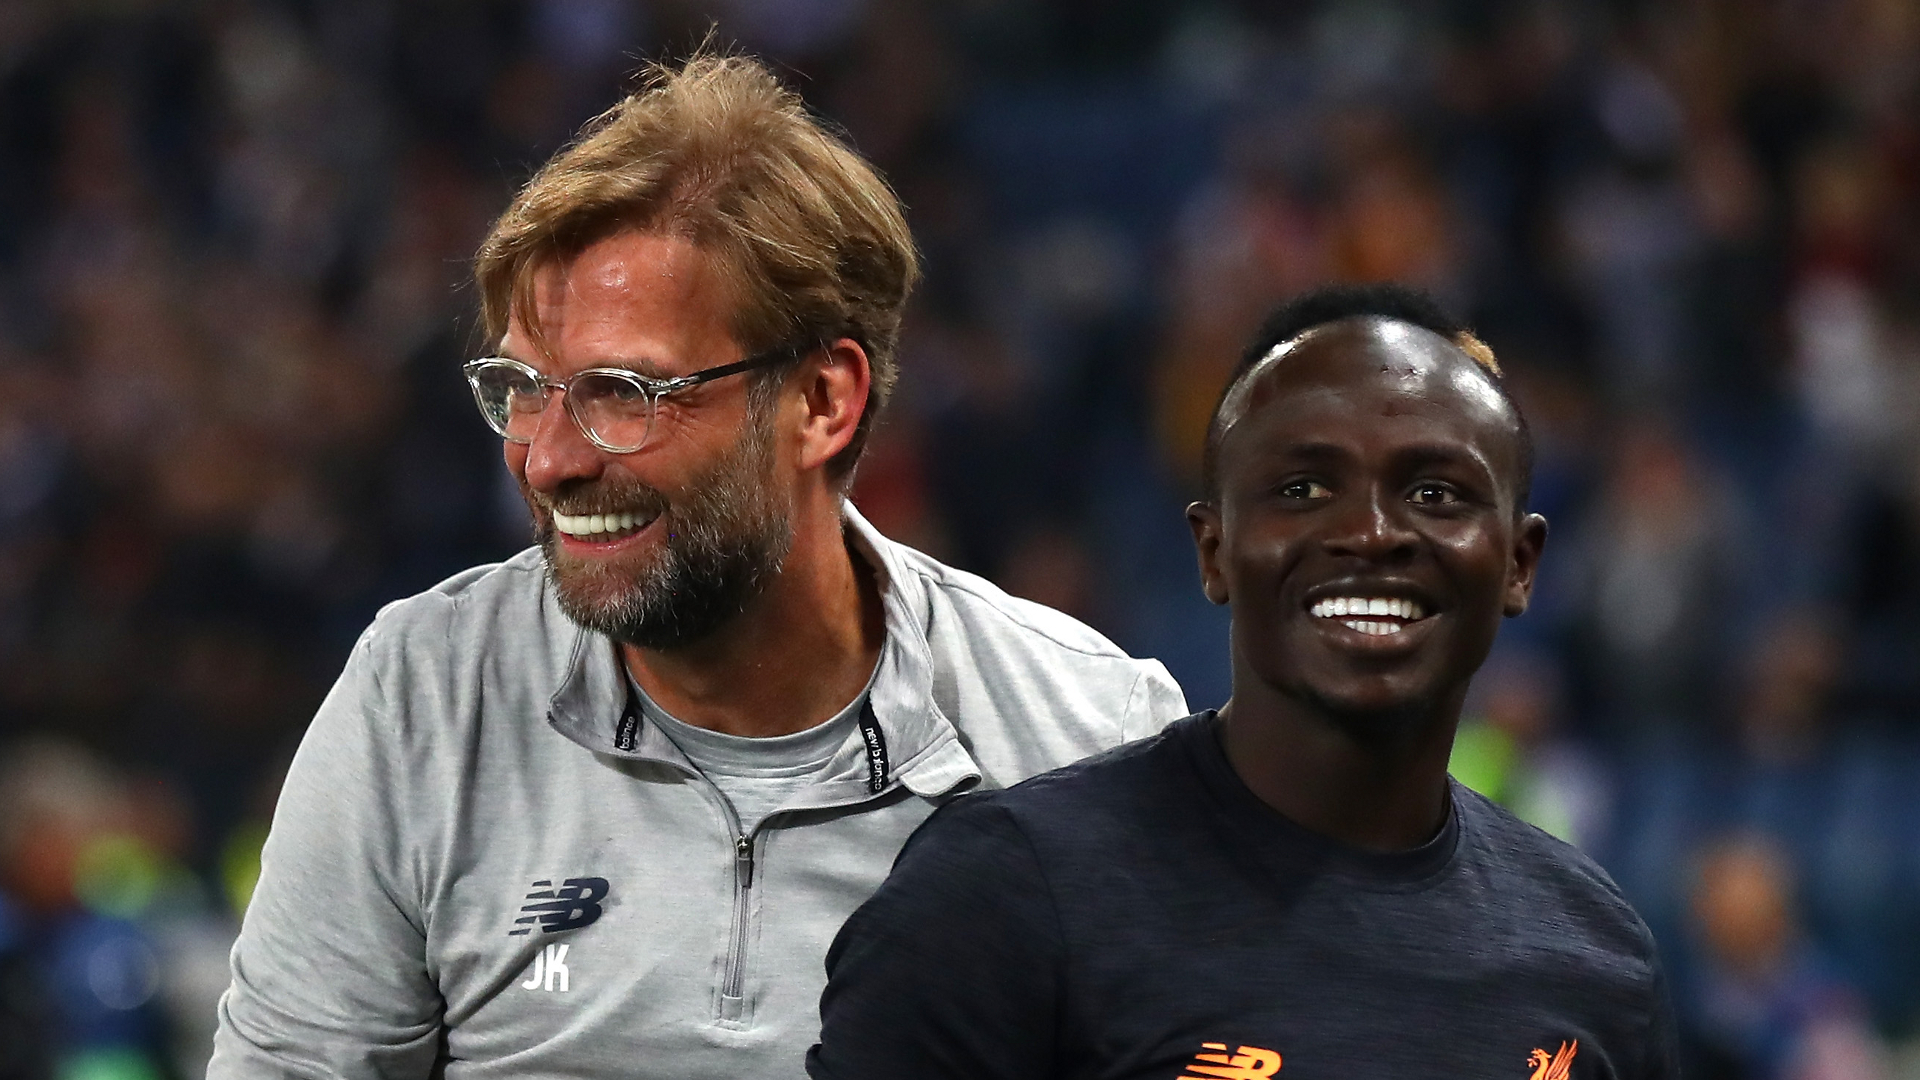 Mane admits to Salah 'disagreements' but says Liverpool team-mate is a 'pleasure to play beside'